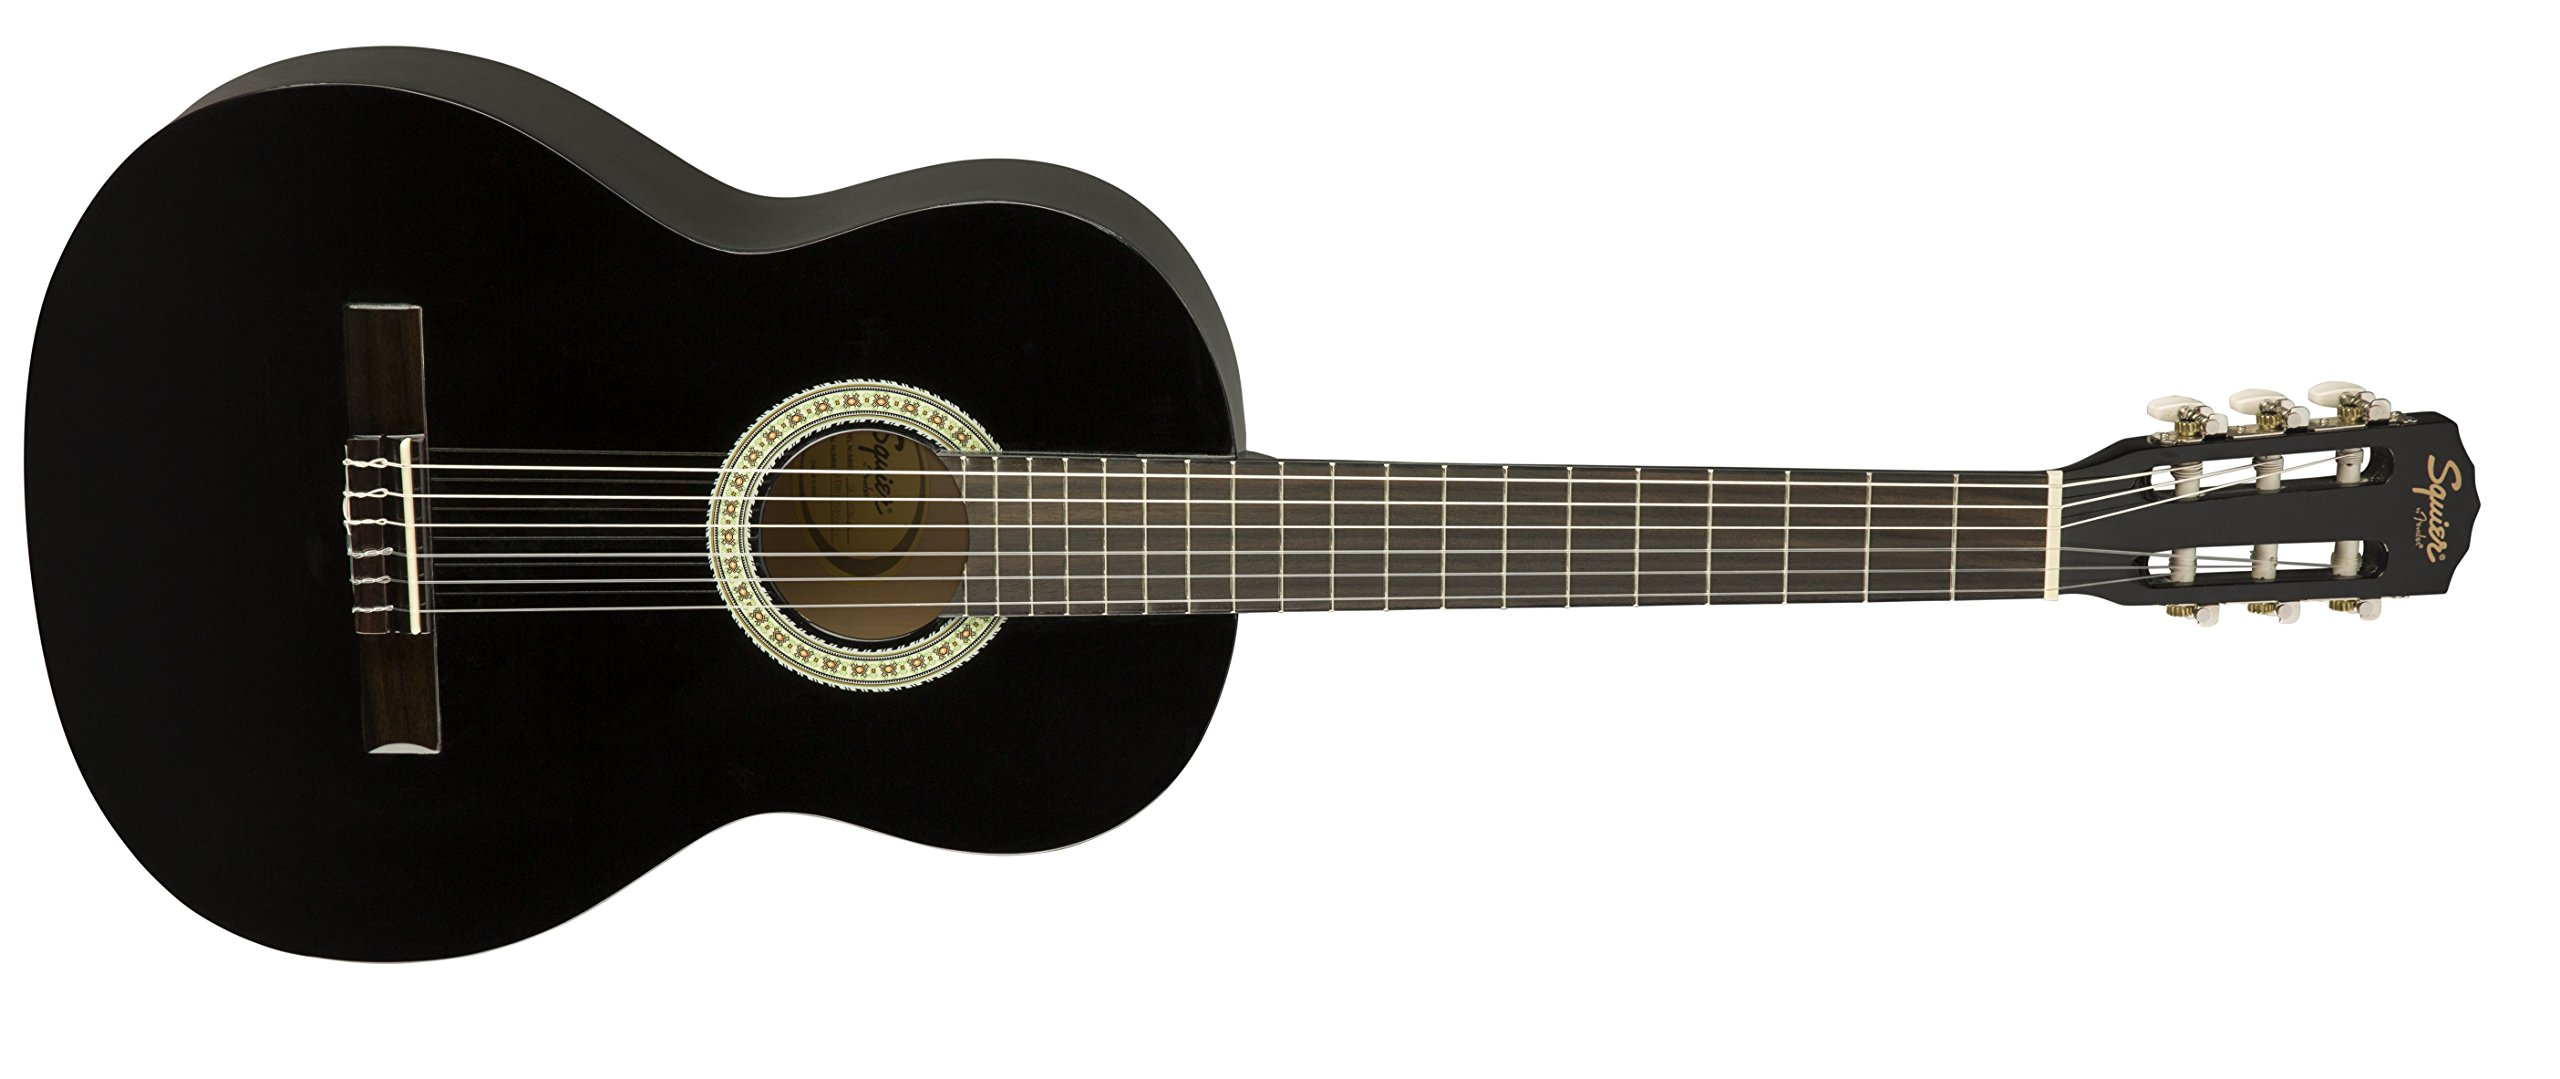 squier by fender sa 150 dreadnought acoustic guitar guitar affinity. Black Bedroom Furniture Sets. Home Design Ideas